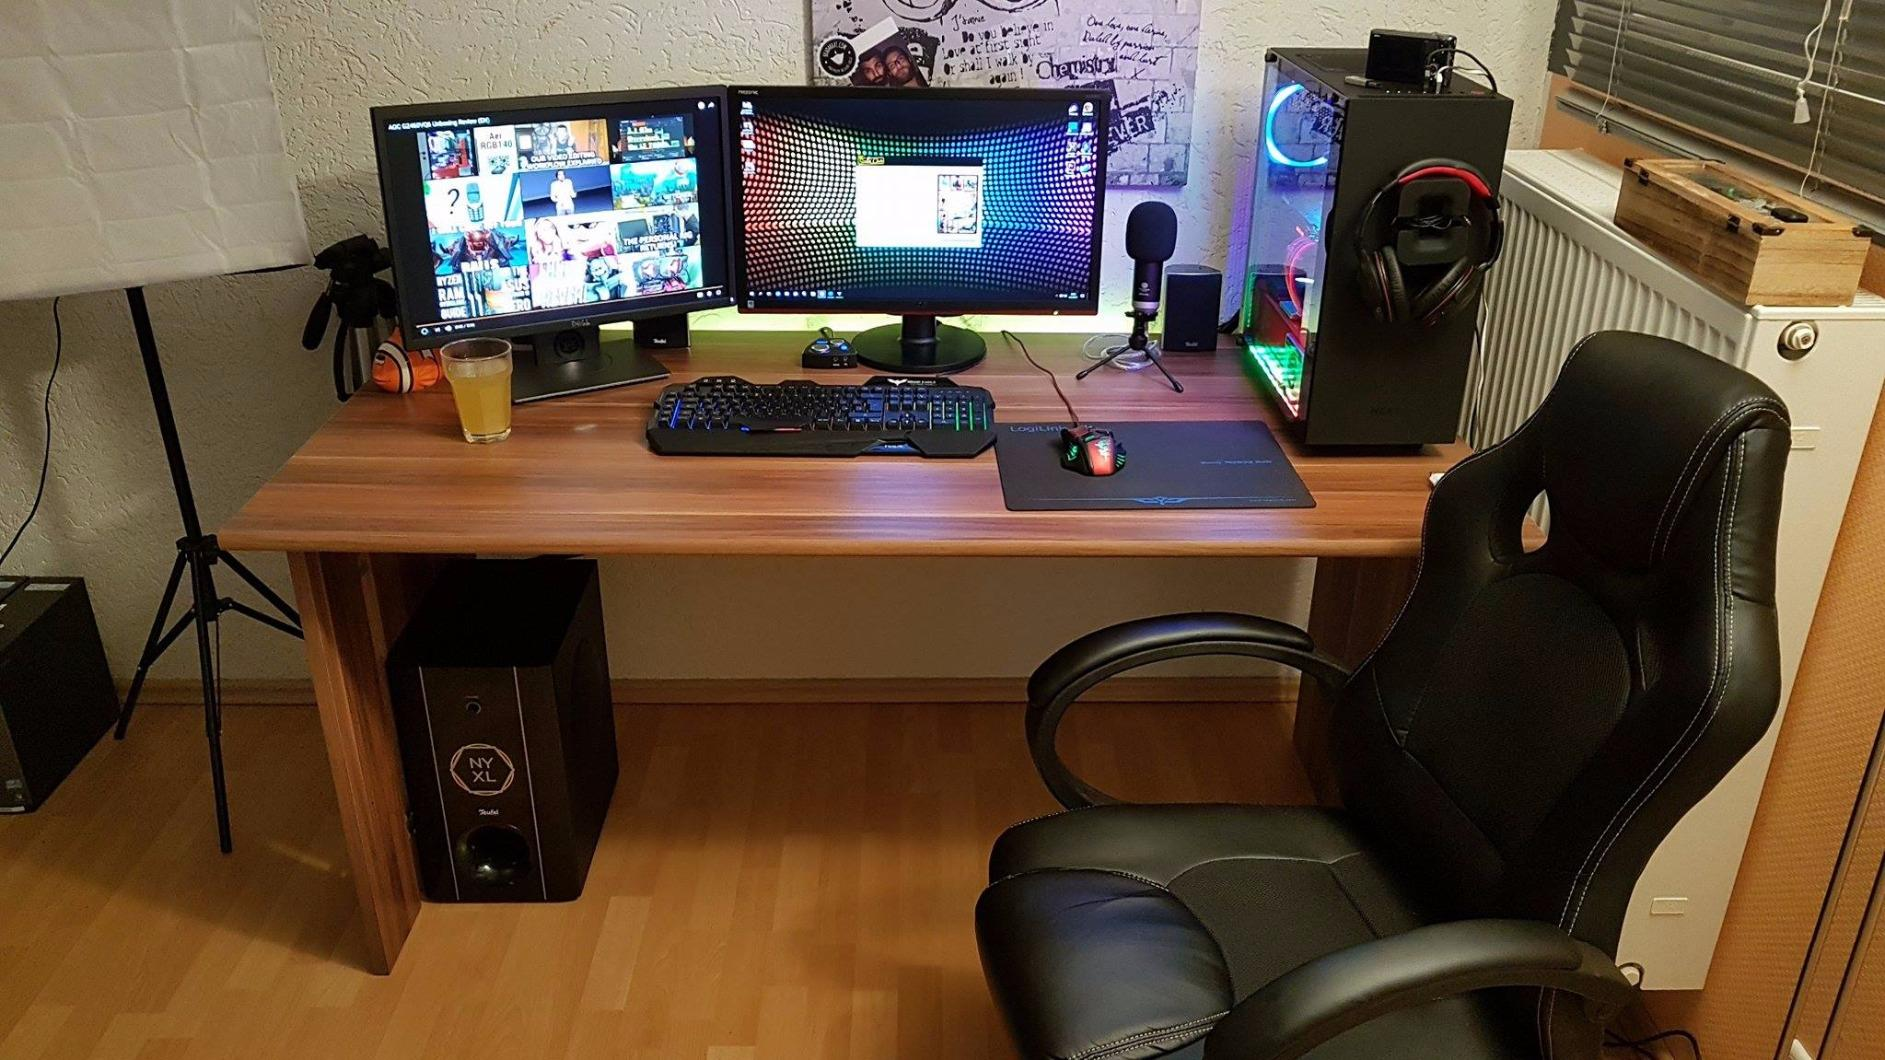 gaming schreibtisch vergleich 2018 14 pc tische f r gamer. Black Bedroom Furniture Sets. Home Design Ideas